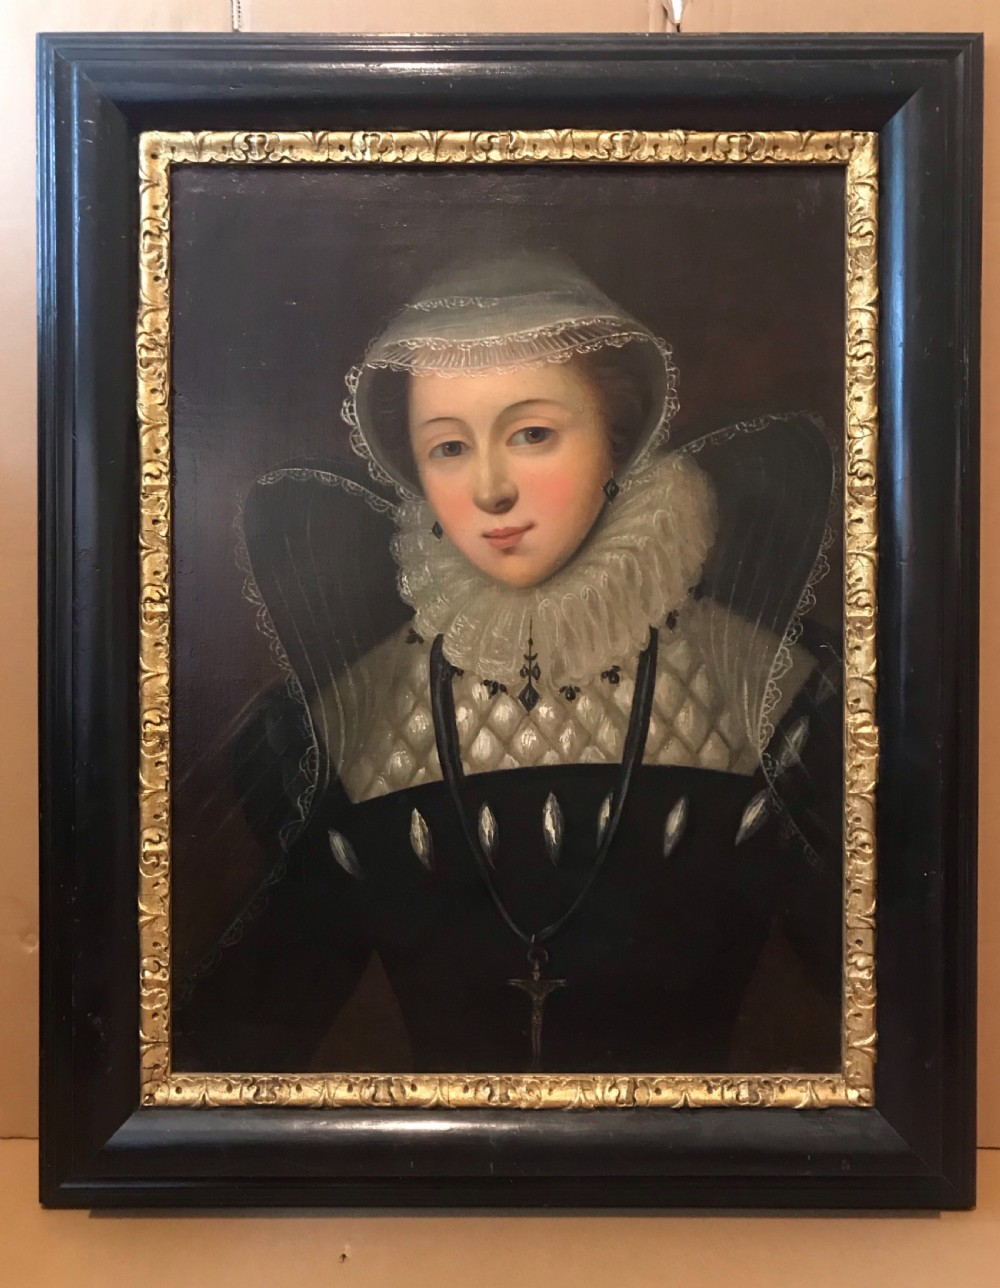 mary queen of scots oil portrait after nicholas hilliard 18th century oil paintings